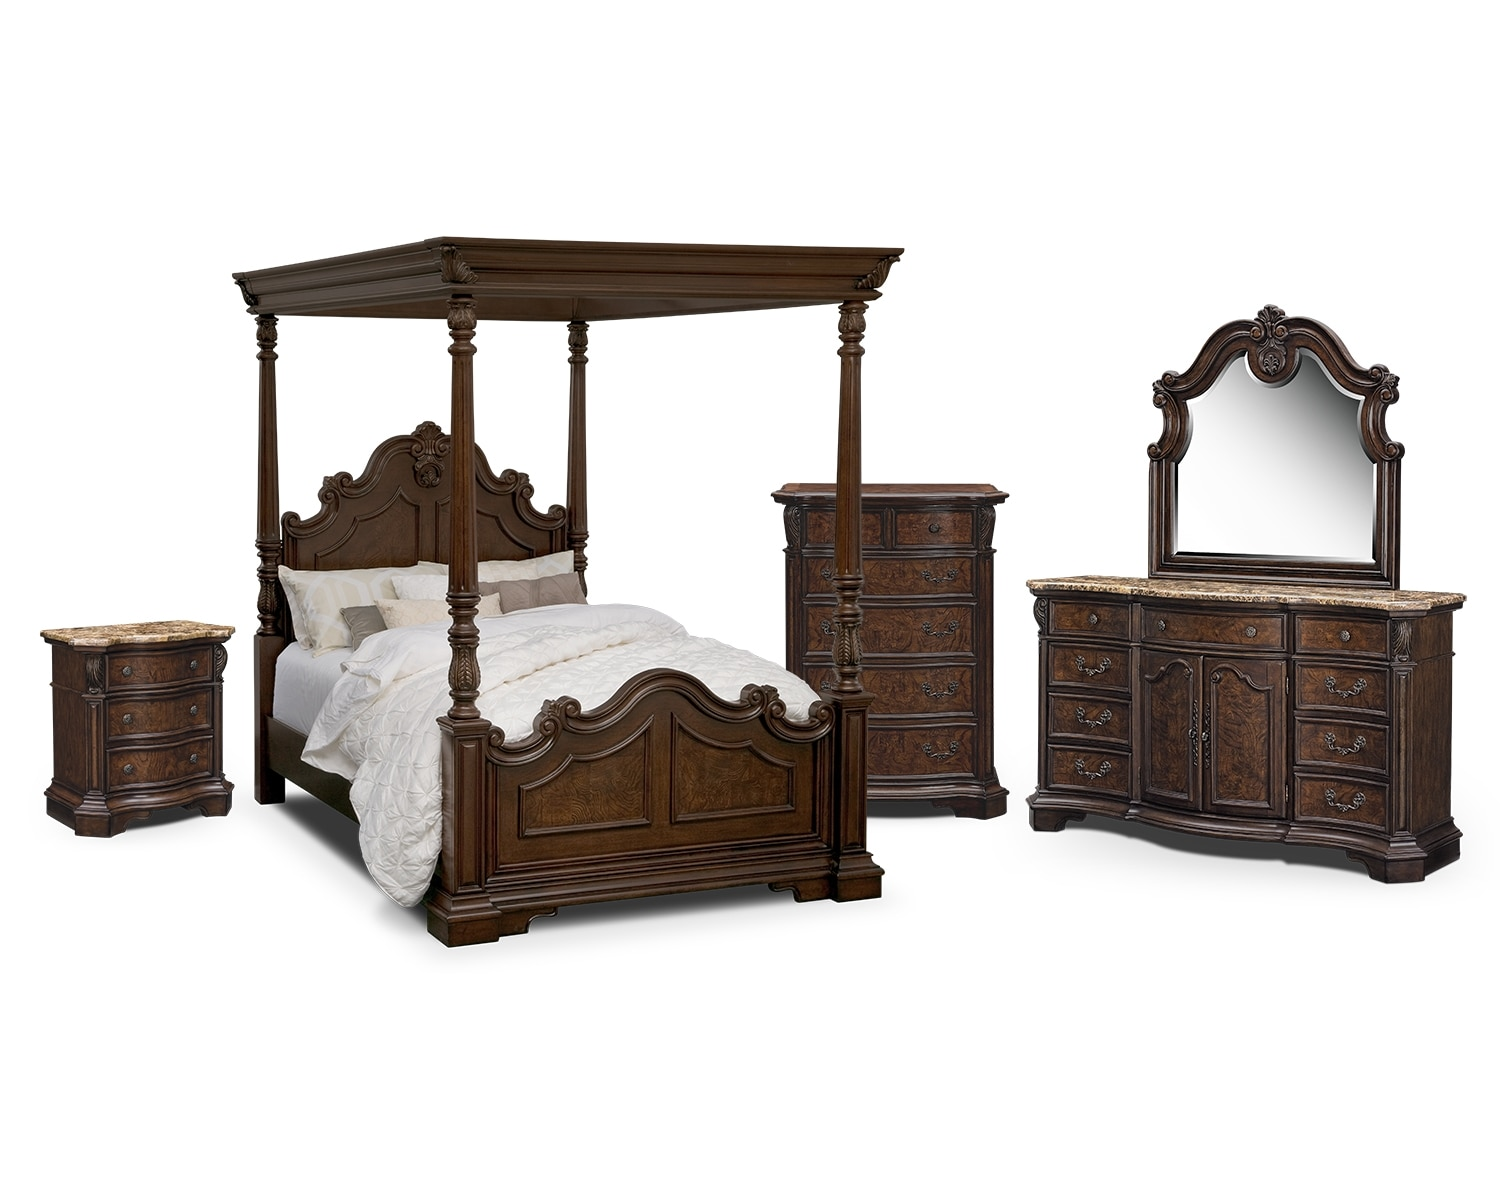 The Monticello Pecan Canopy Collection